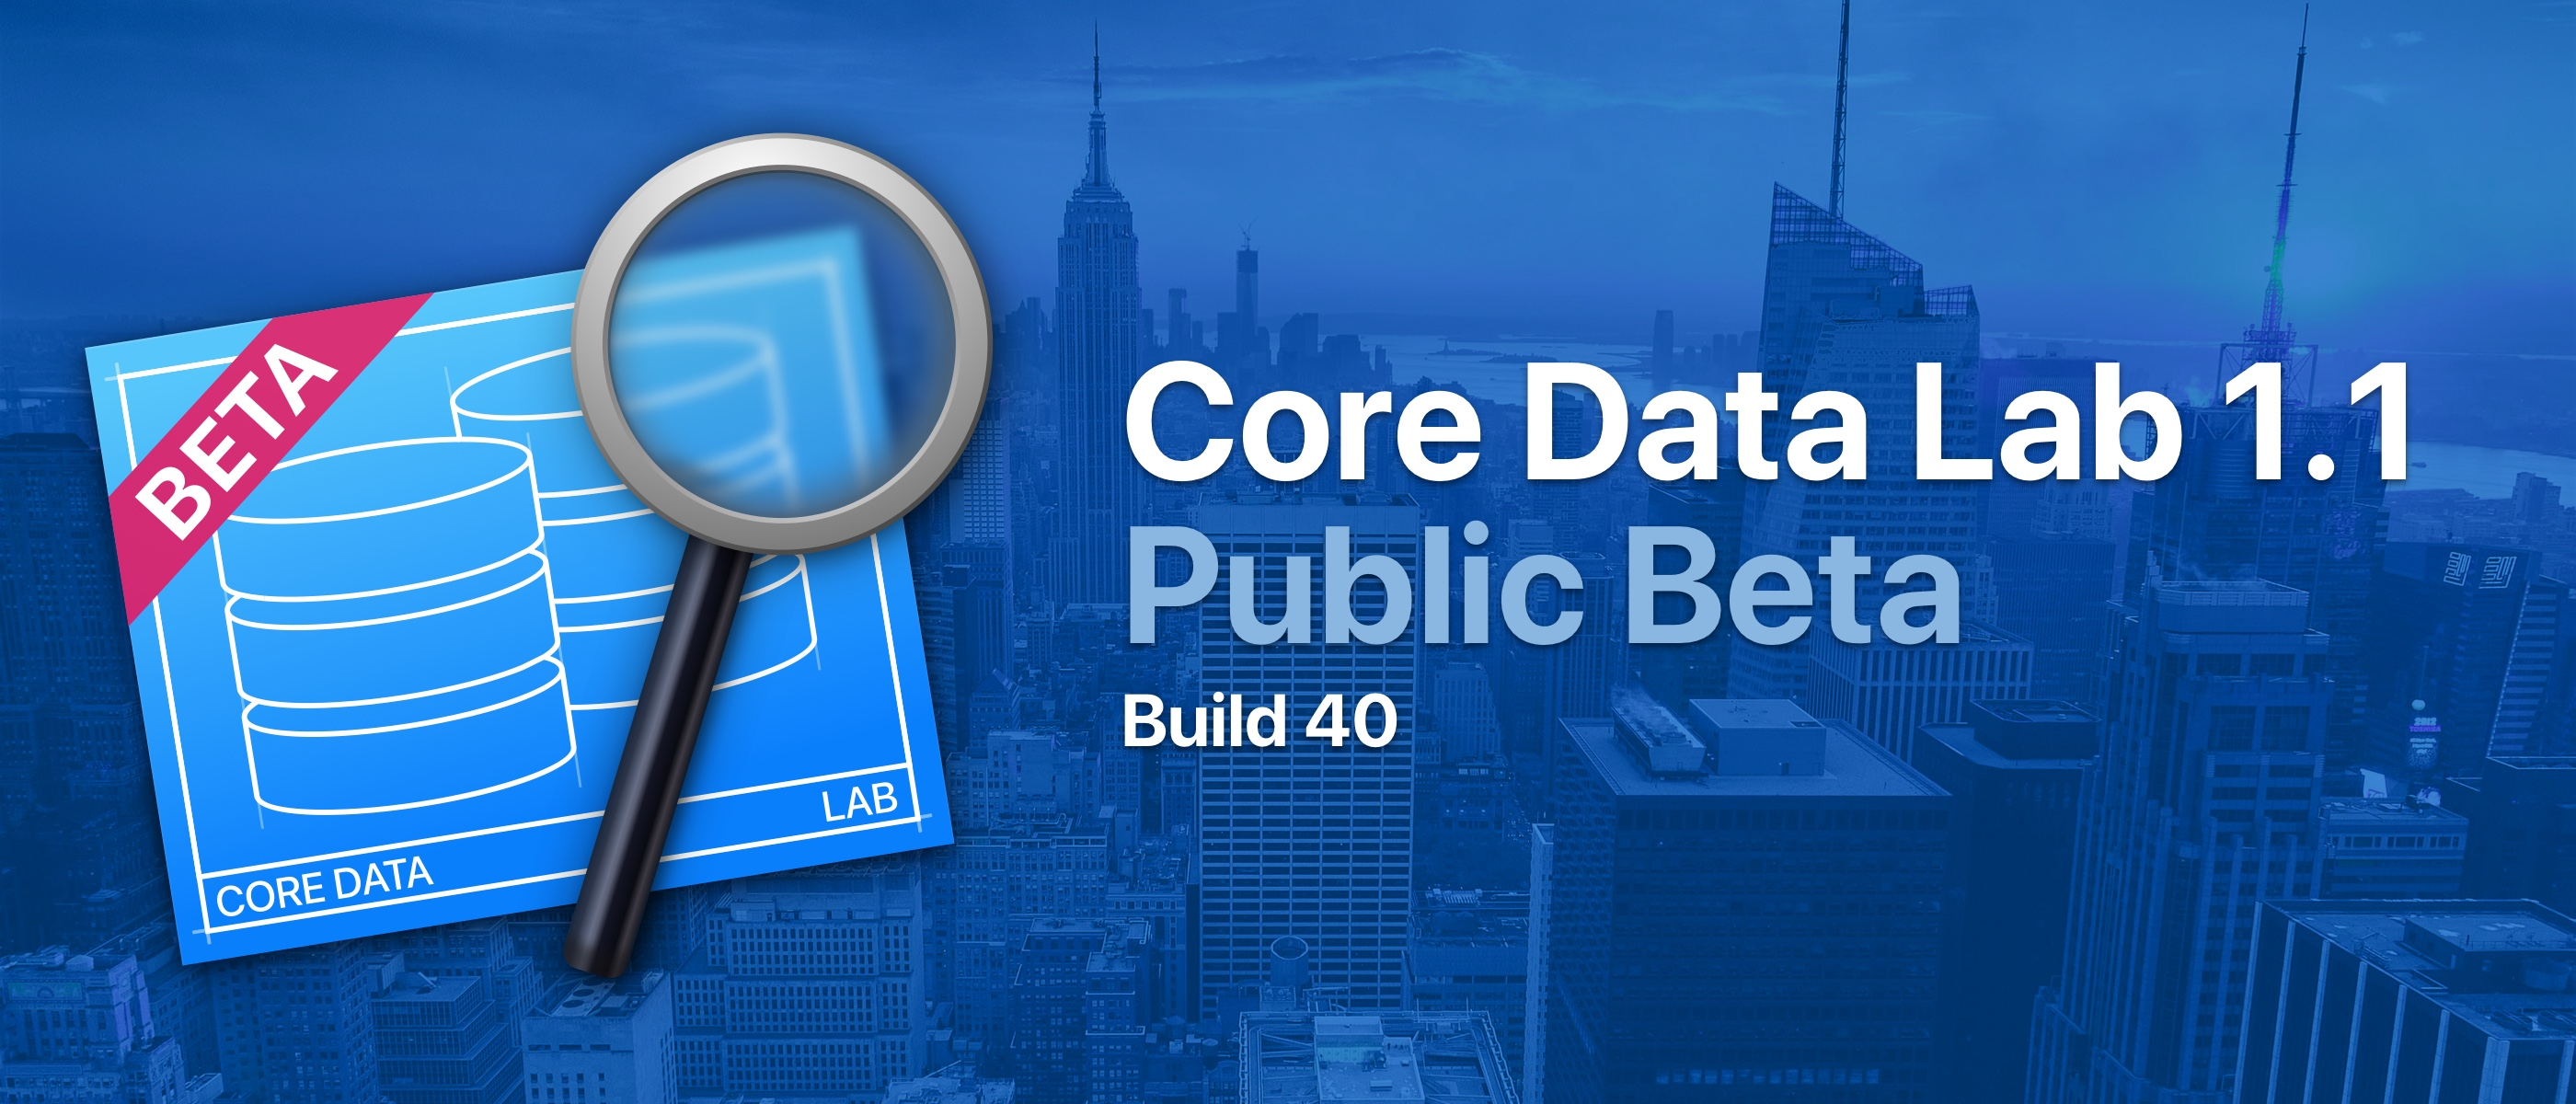 Core Data Lab 1.1